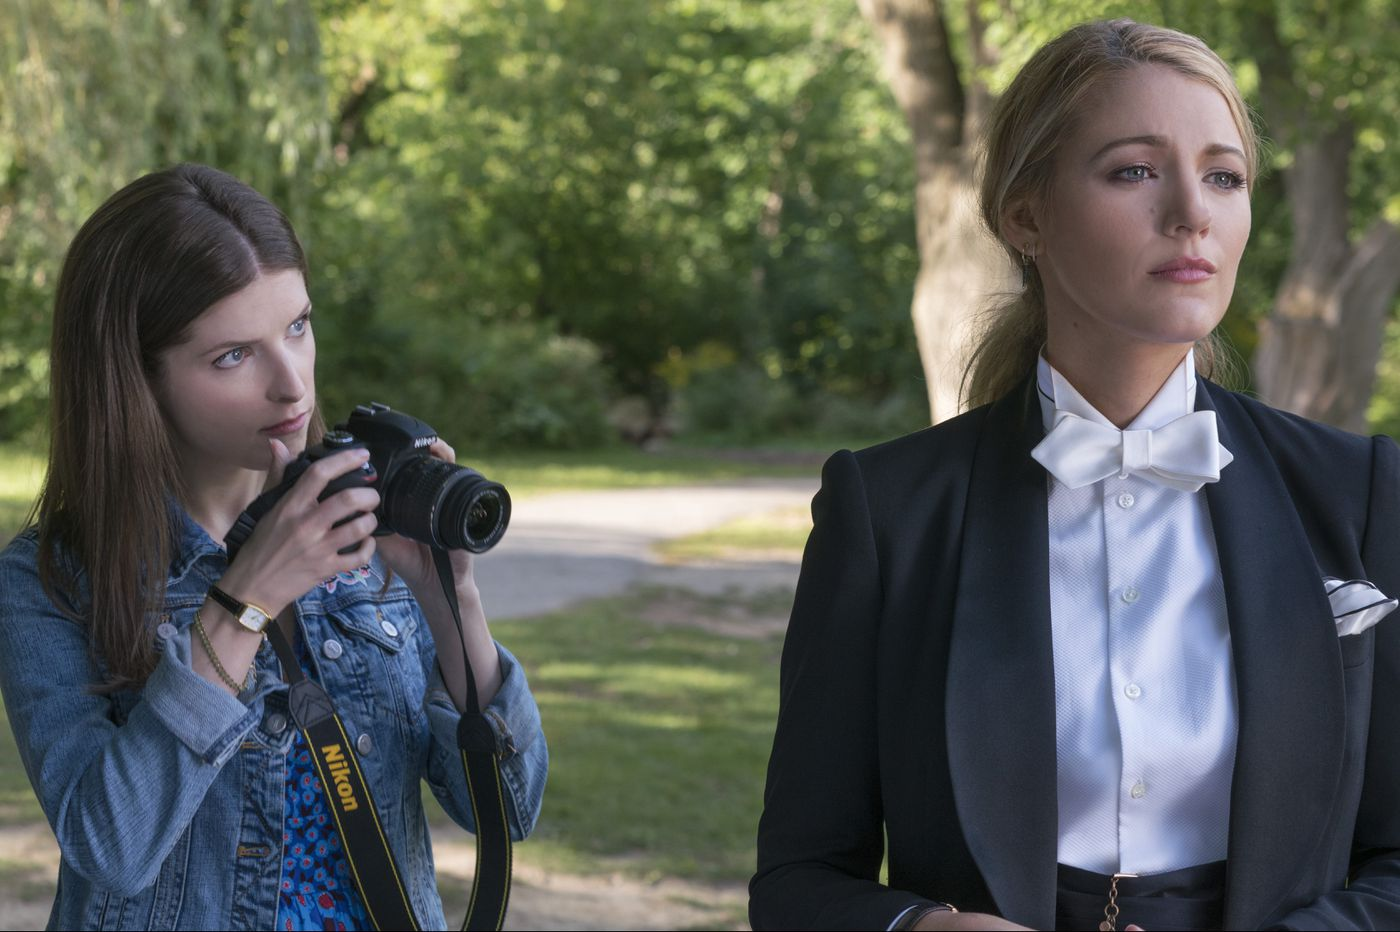 'A Simple Favor': Anna Kendrick and Blake Lively have fun in naughty mommy noir